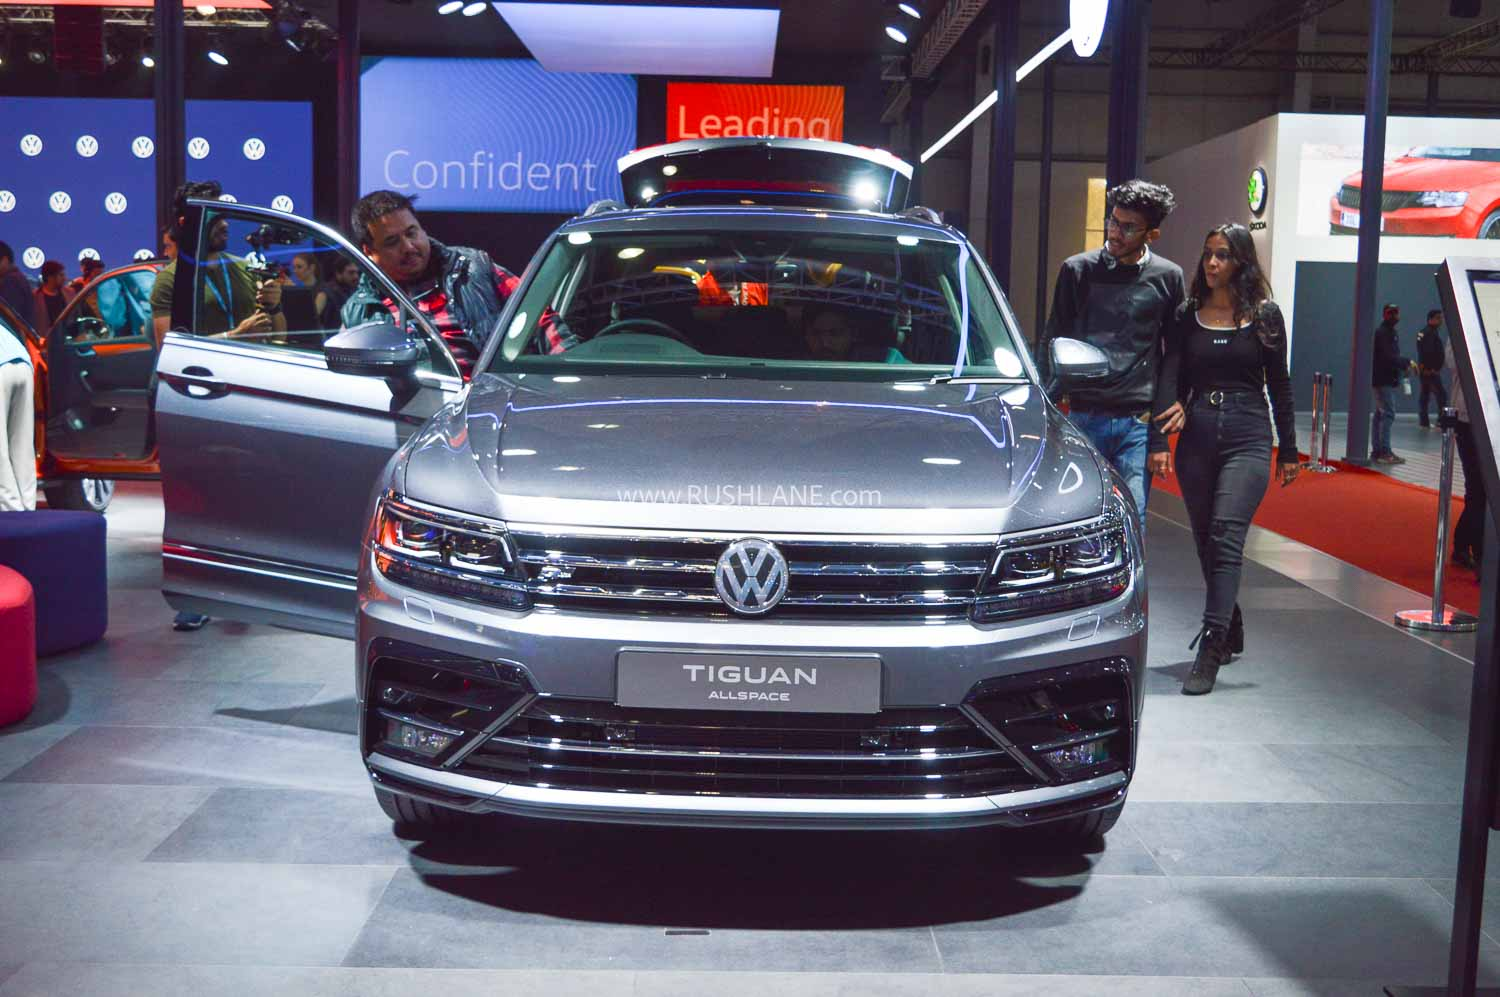 2020 Volkswagen Tiguan All Space at Auto Expo